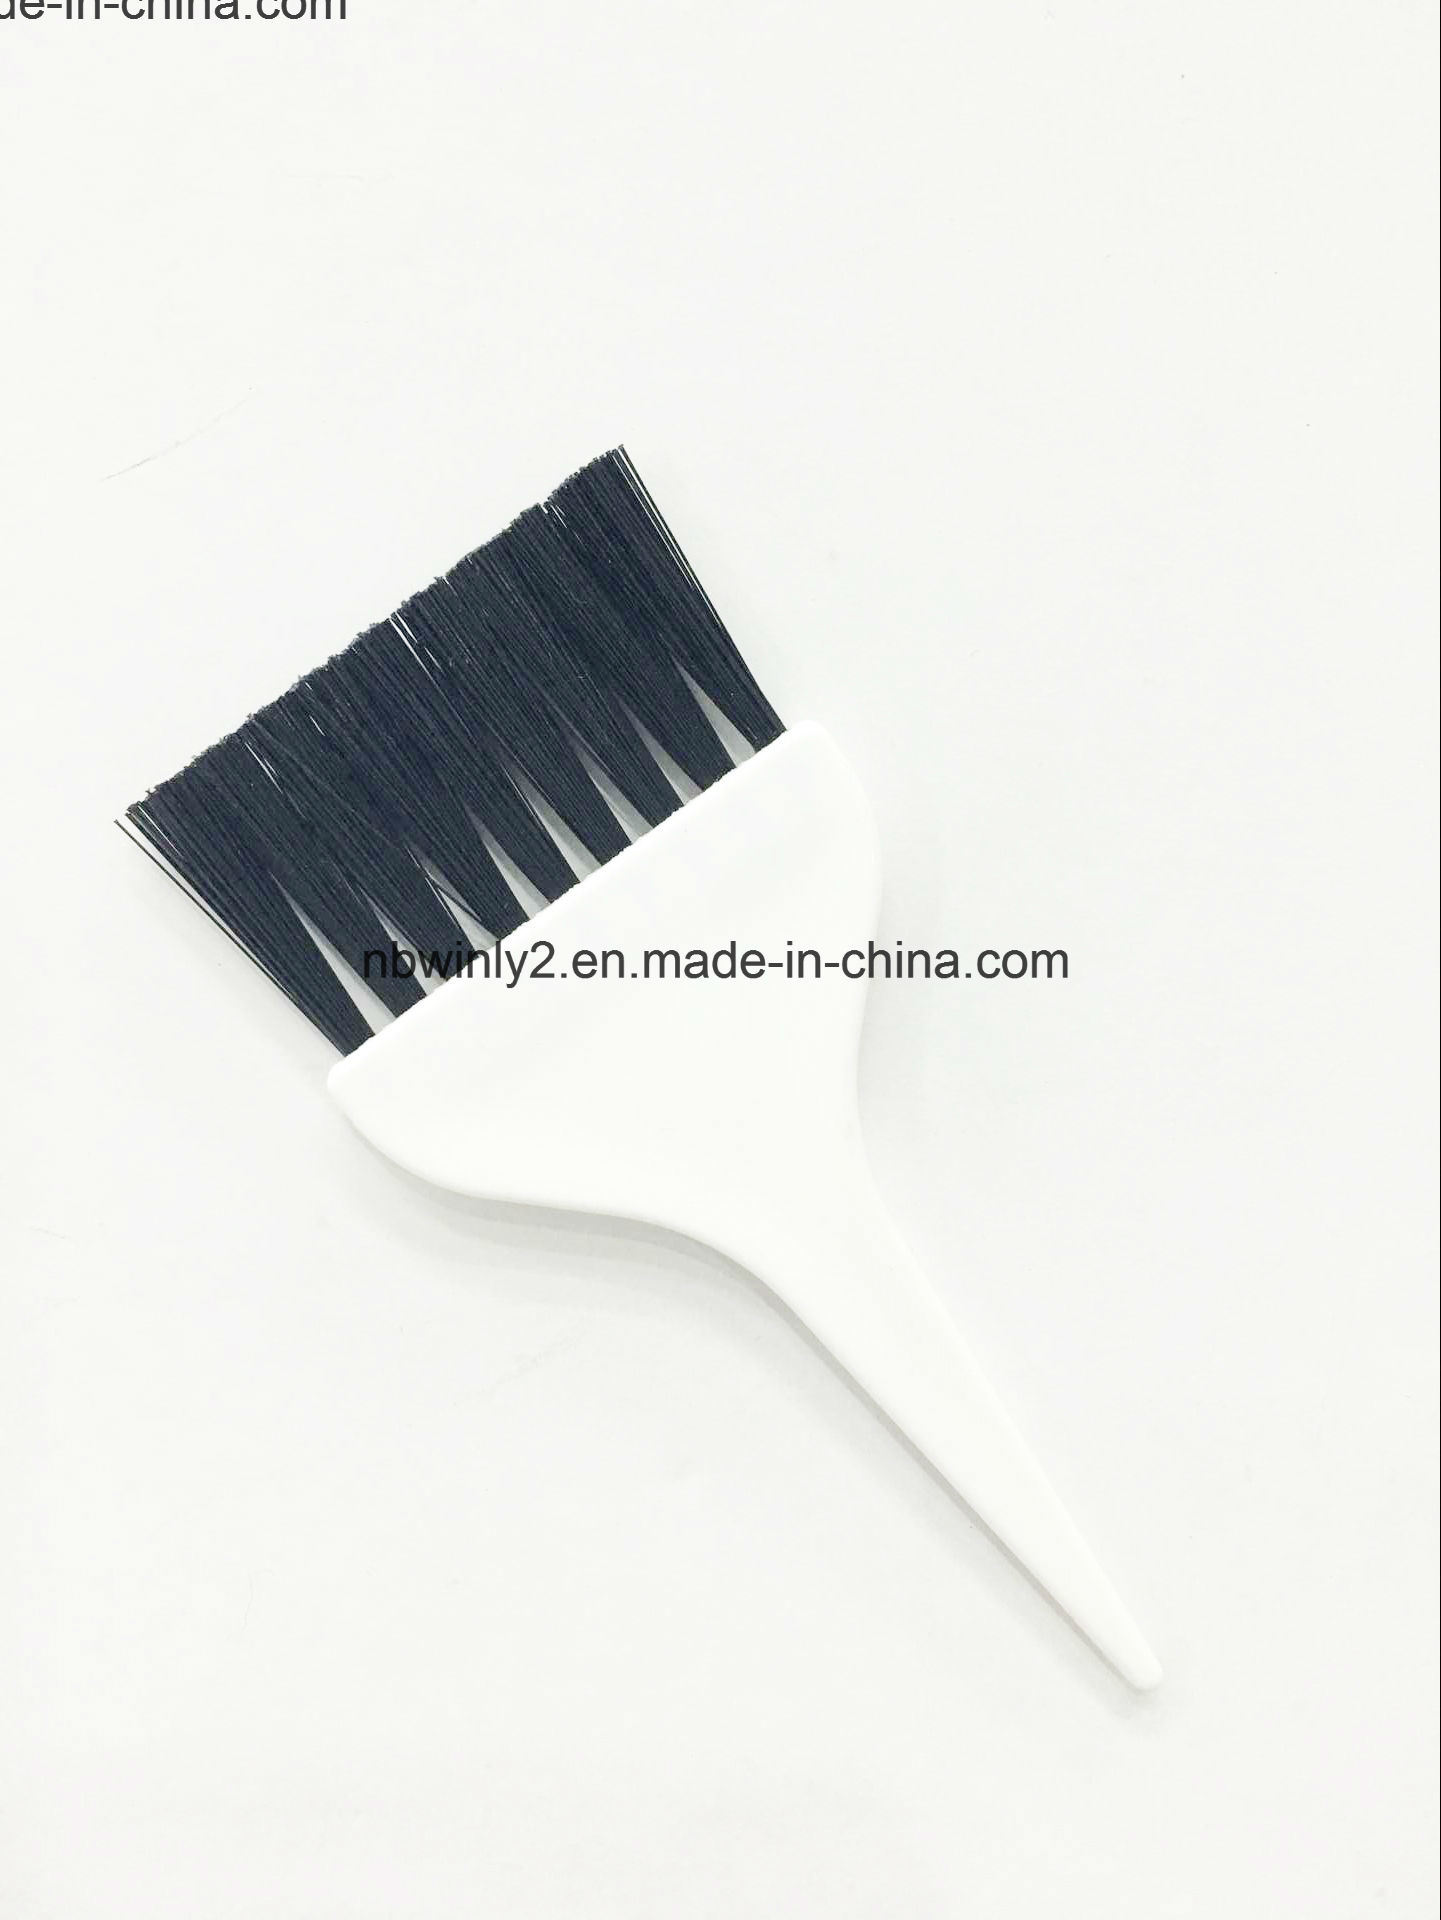 Small White Tint Brush